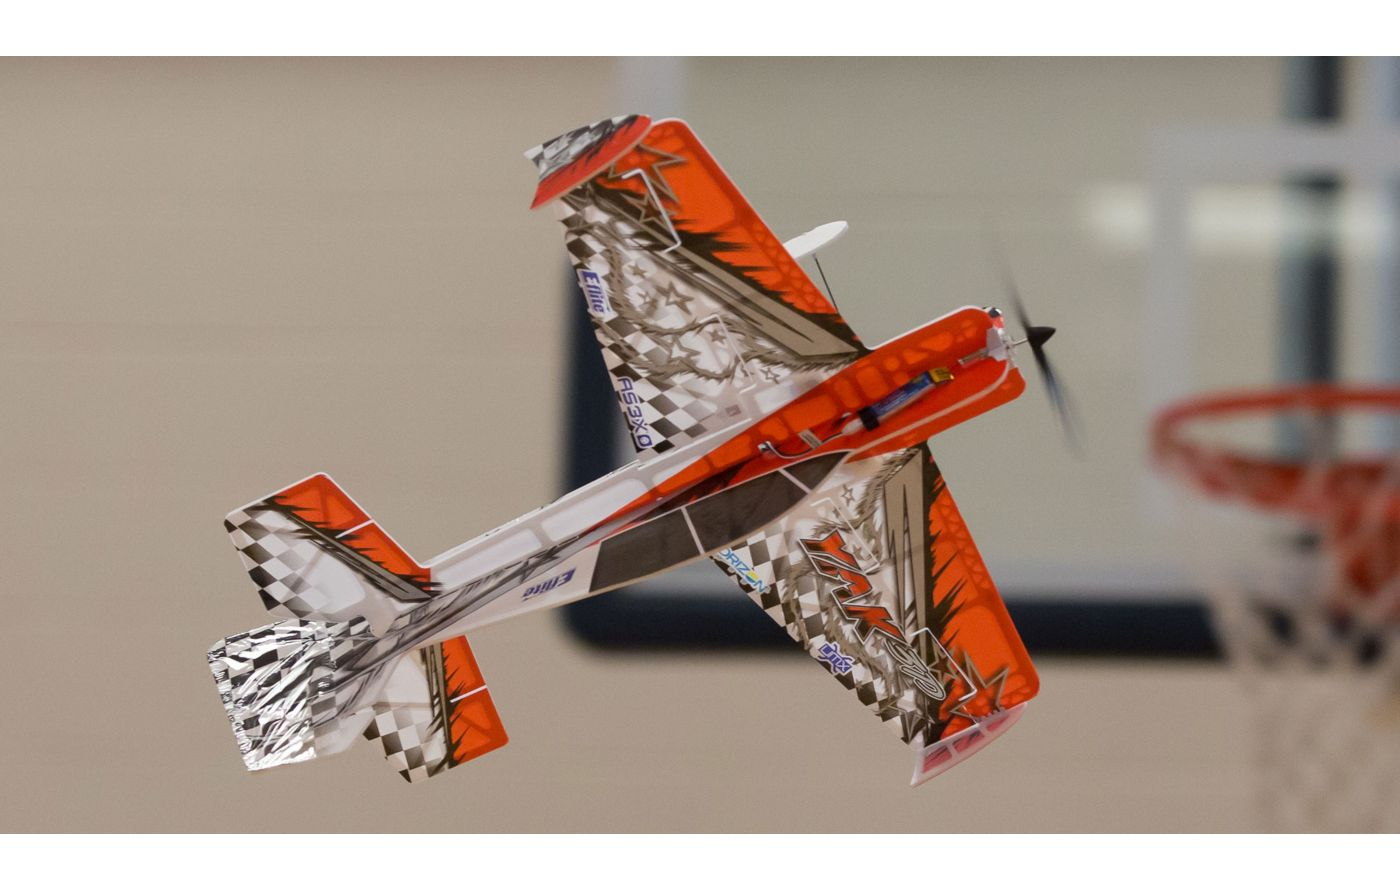 Image for UMX Yak 54 3D BNF Basic with AS3X from Force RC